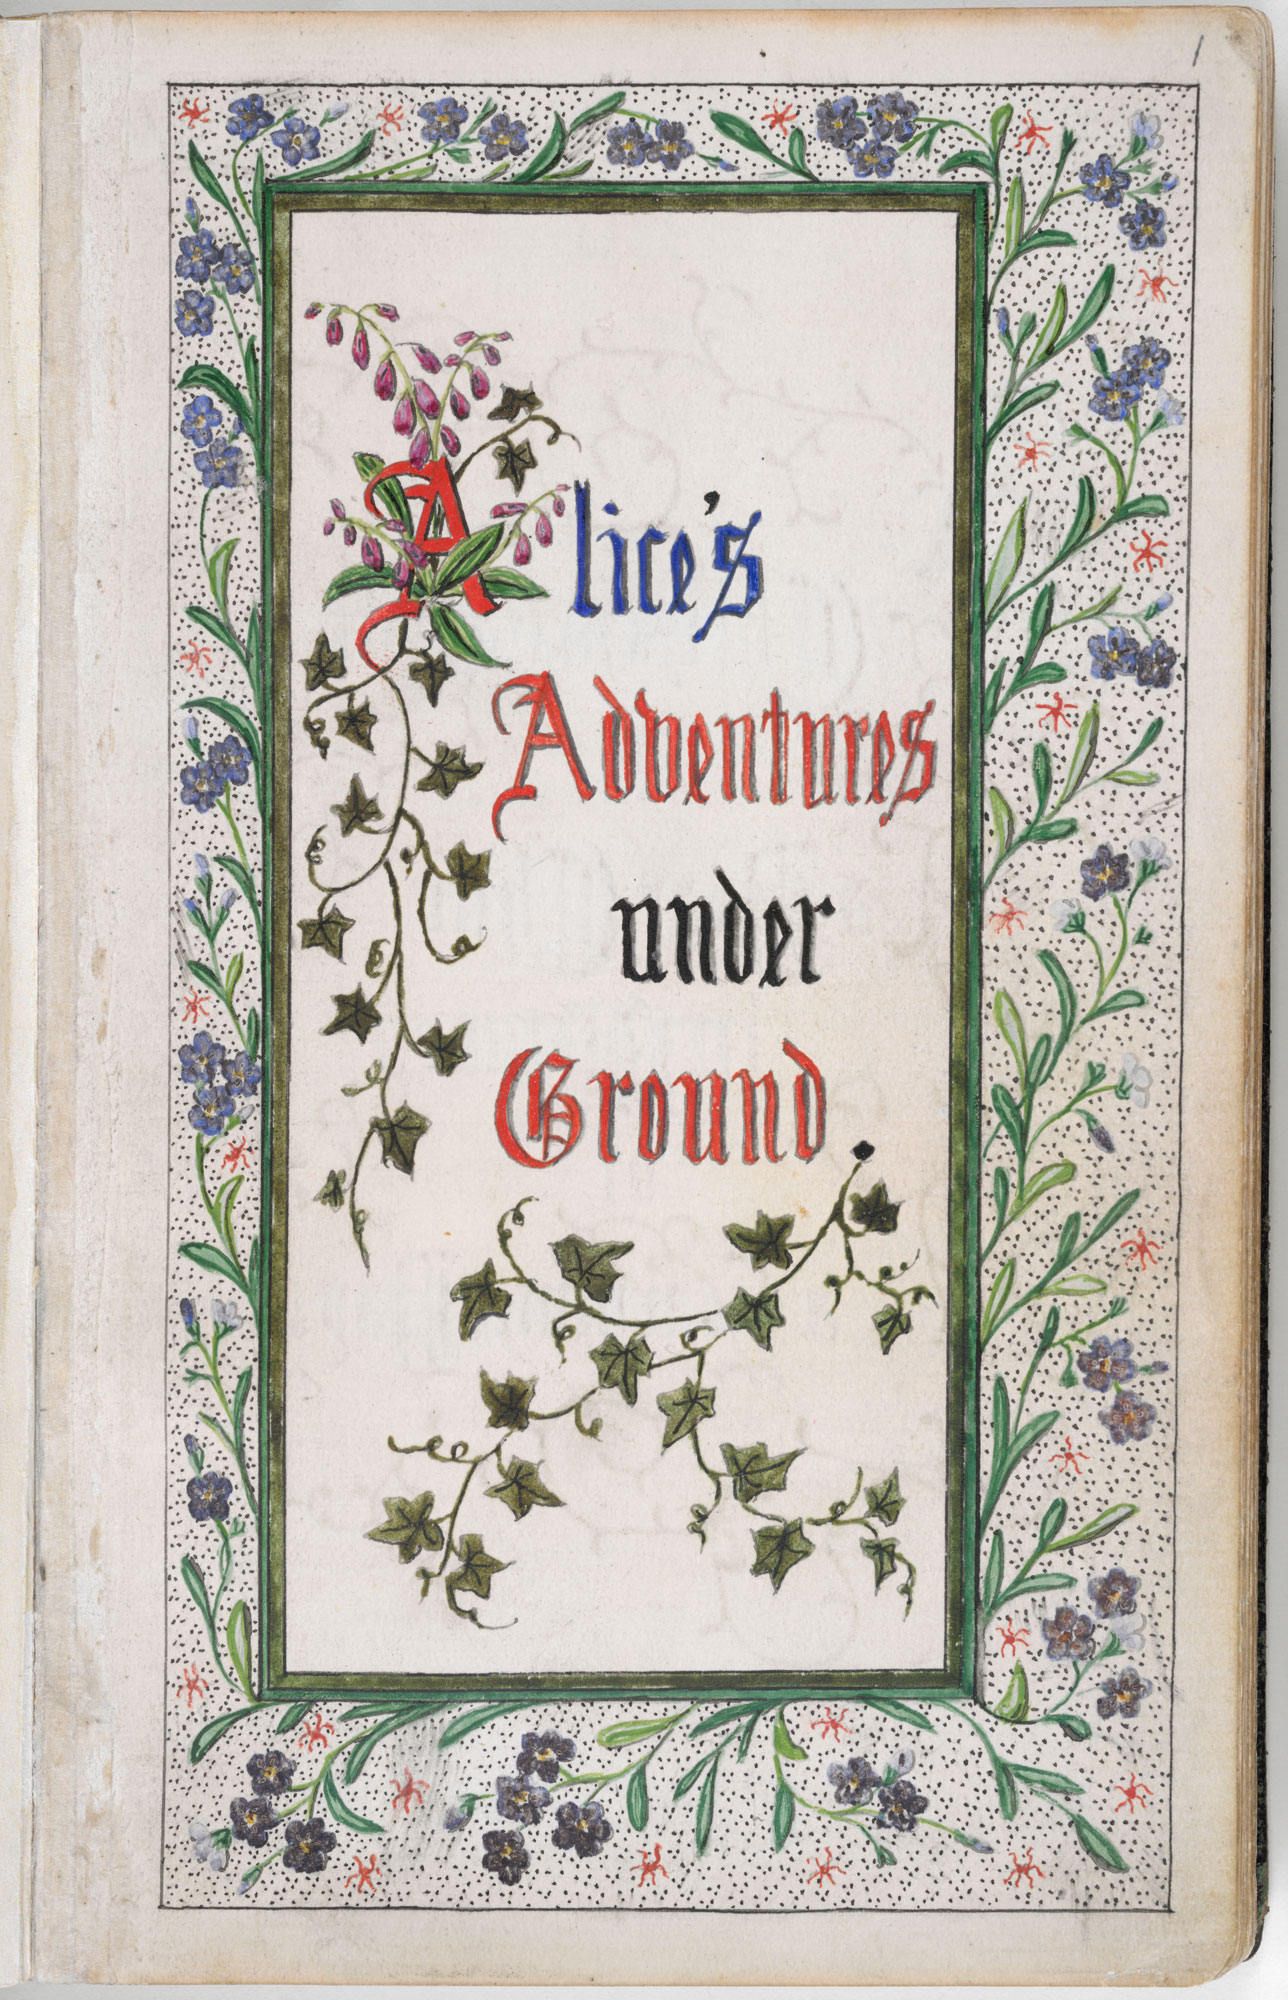 Alice's Adventures Under Ground', the original manuscript version of Alice's Adventures in Wonderland [folio: 1r]